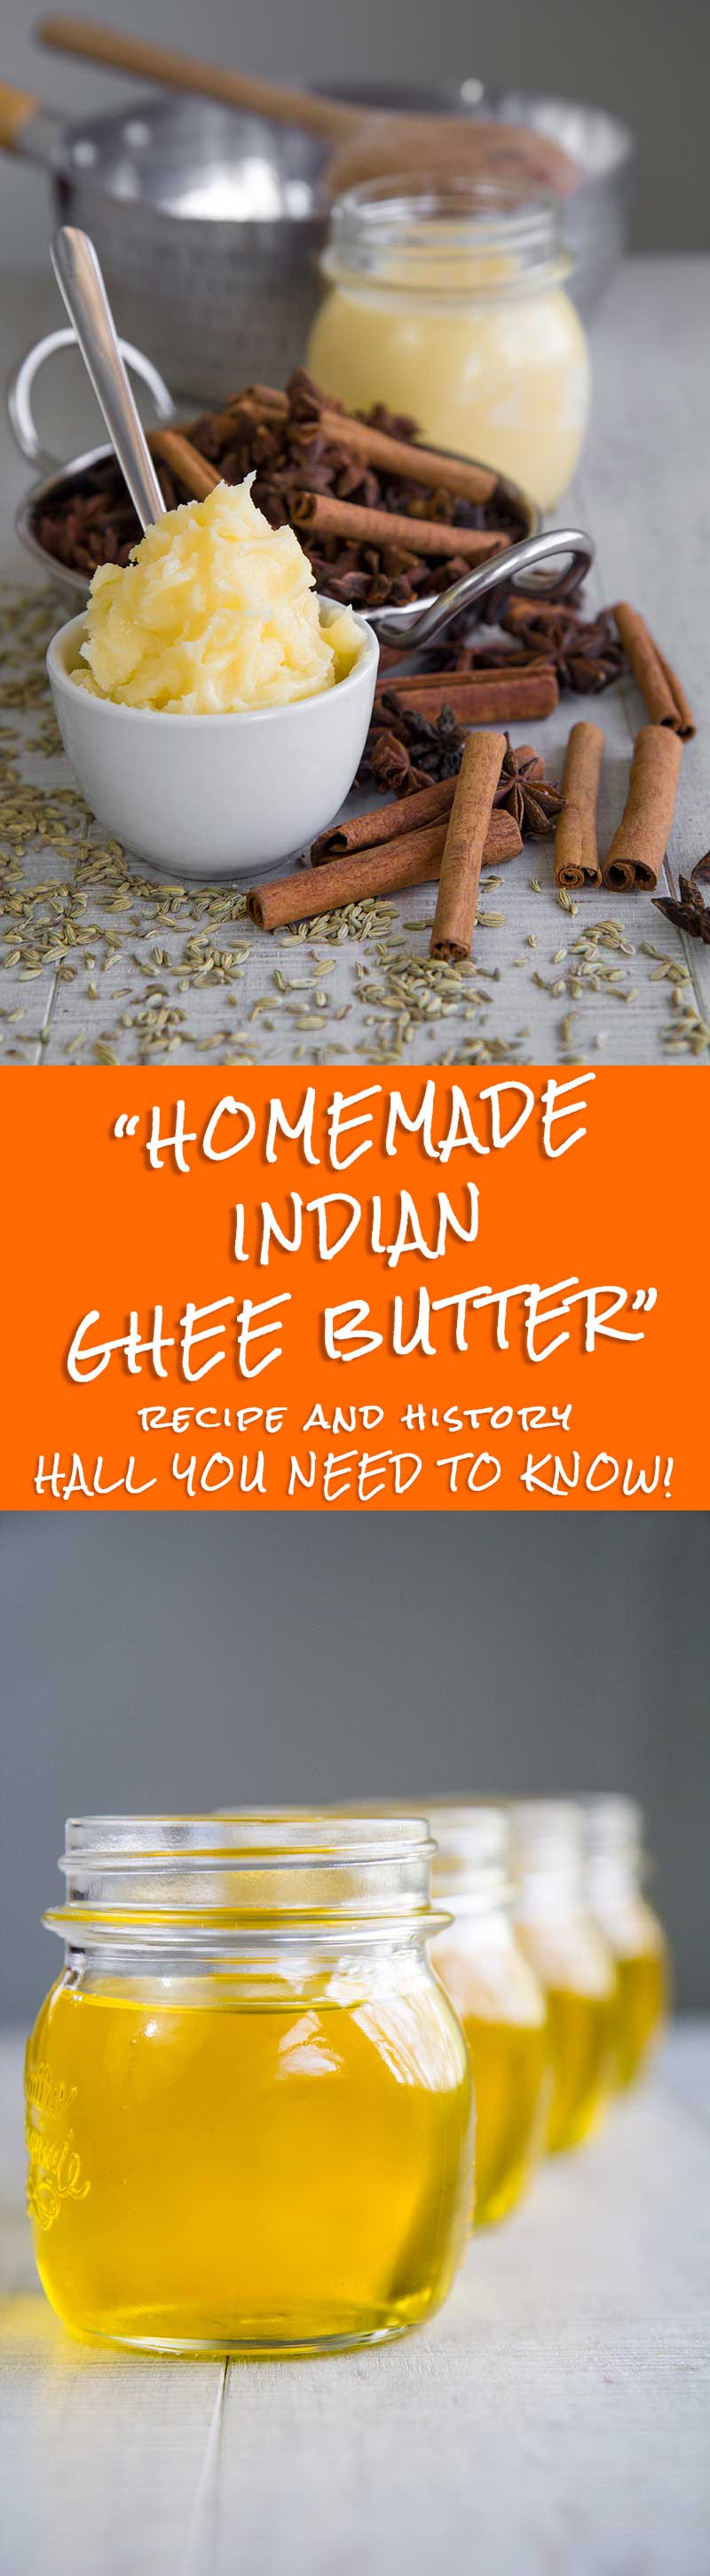 GHEE BUTTER RECIPE & HISTORY - Indian clarified butter